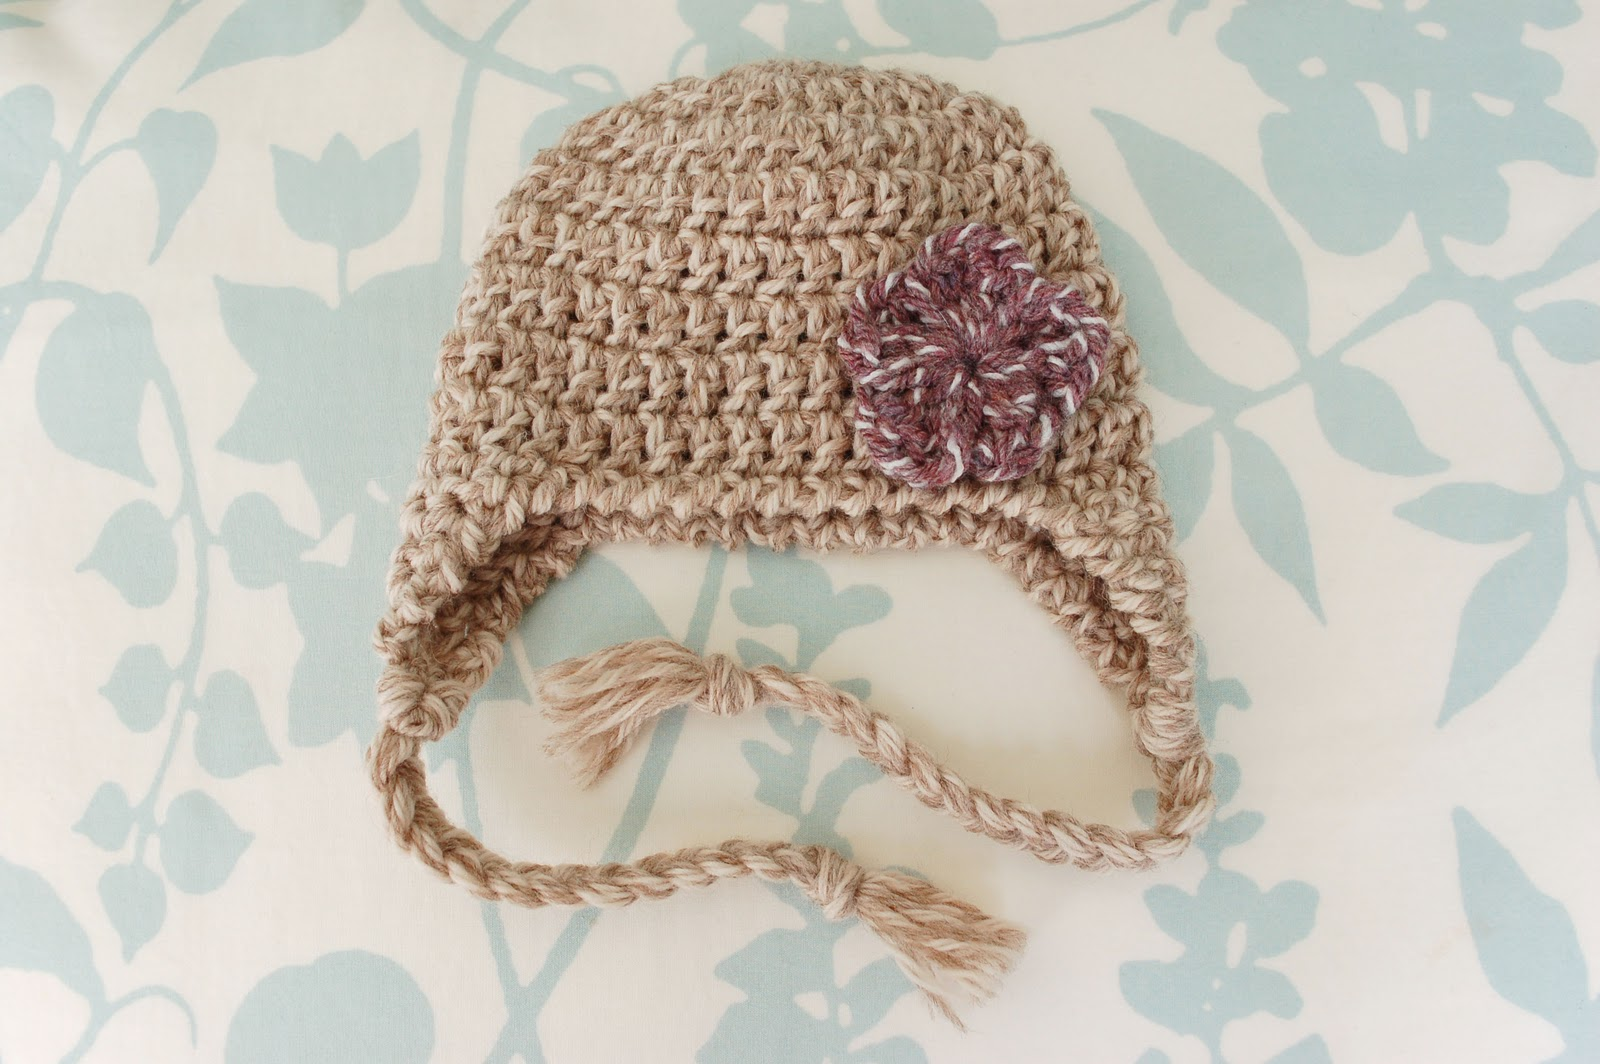 Crochet Pattern For Newborn Hat With Ear Flaps : Alli Crafts: Free Pattern: Earflap Hat Newborn Old Version